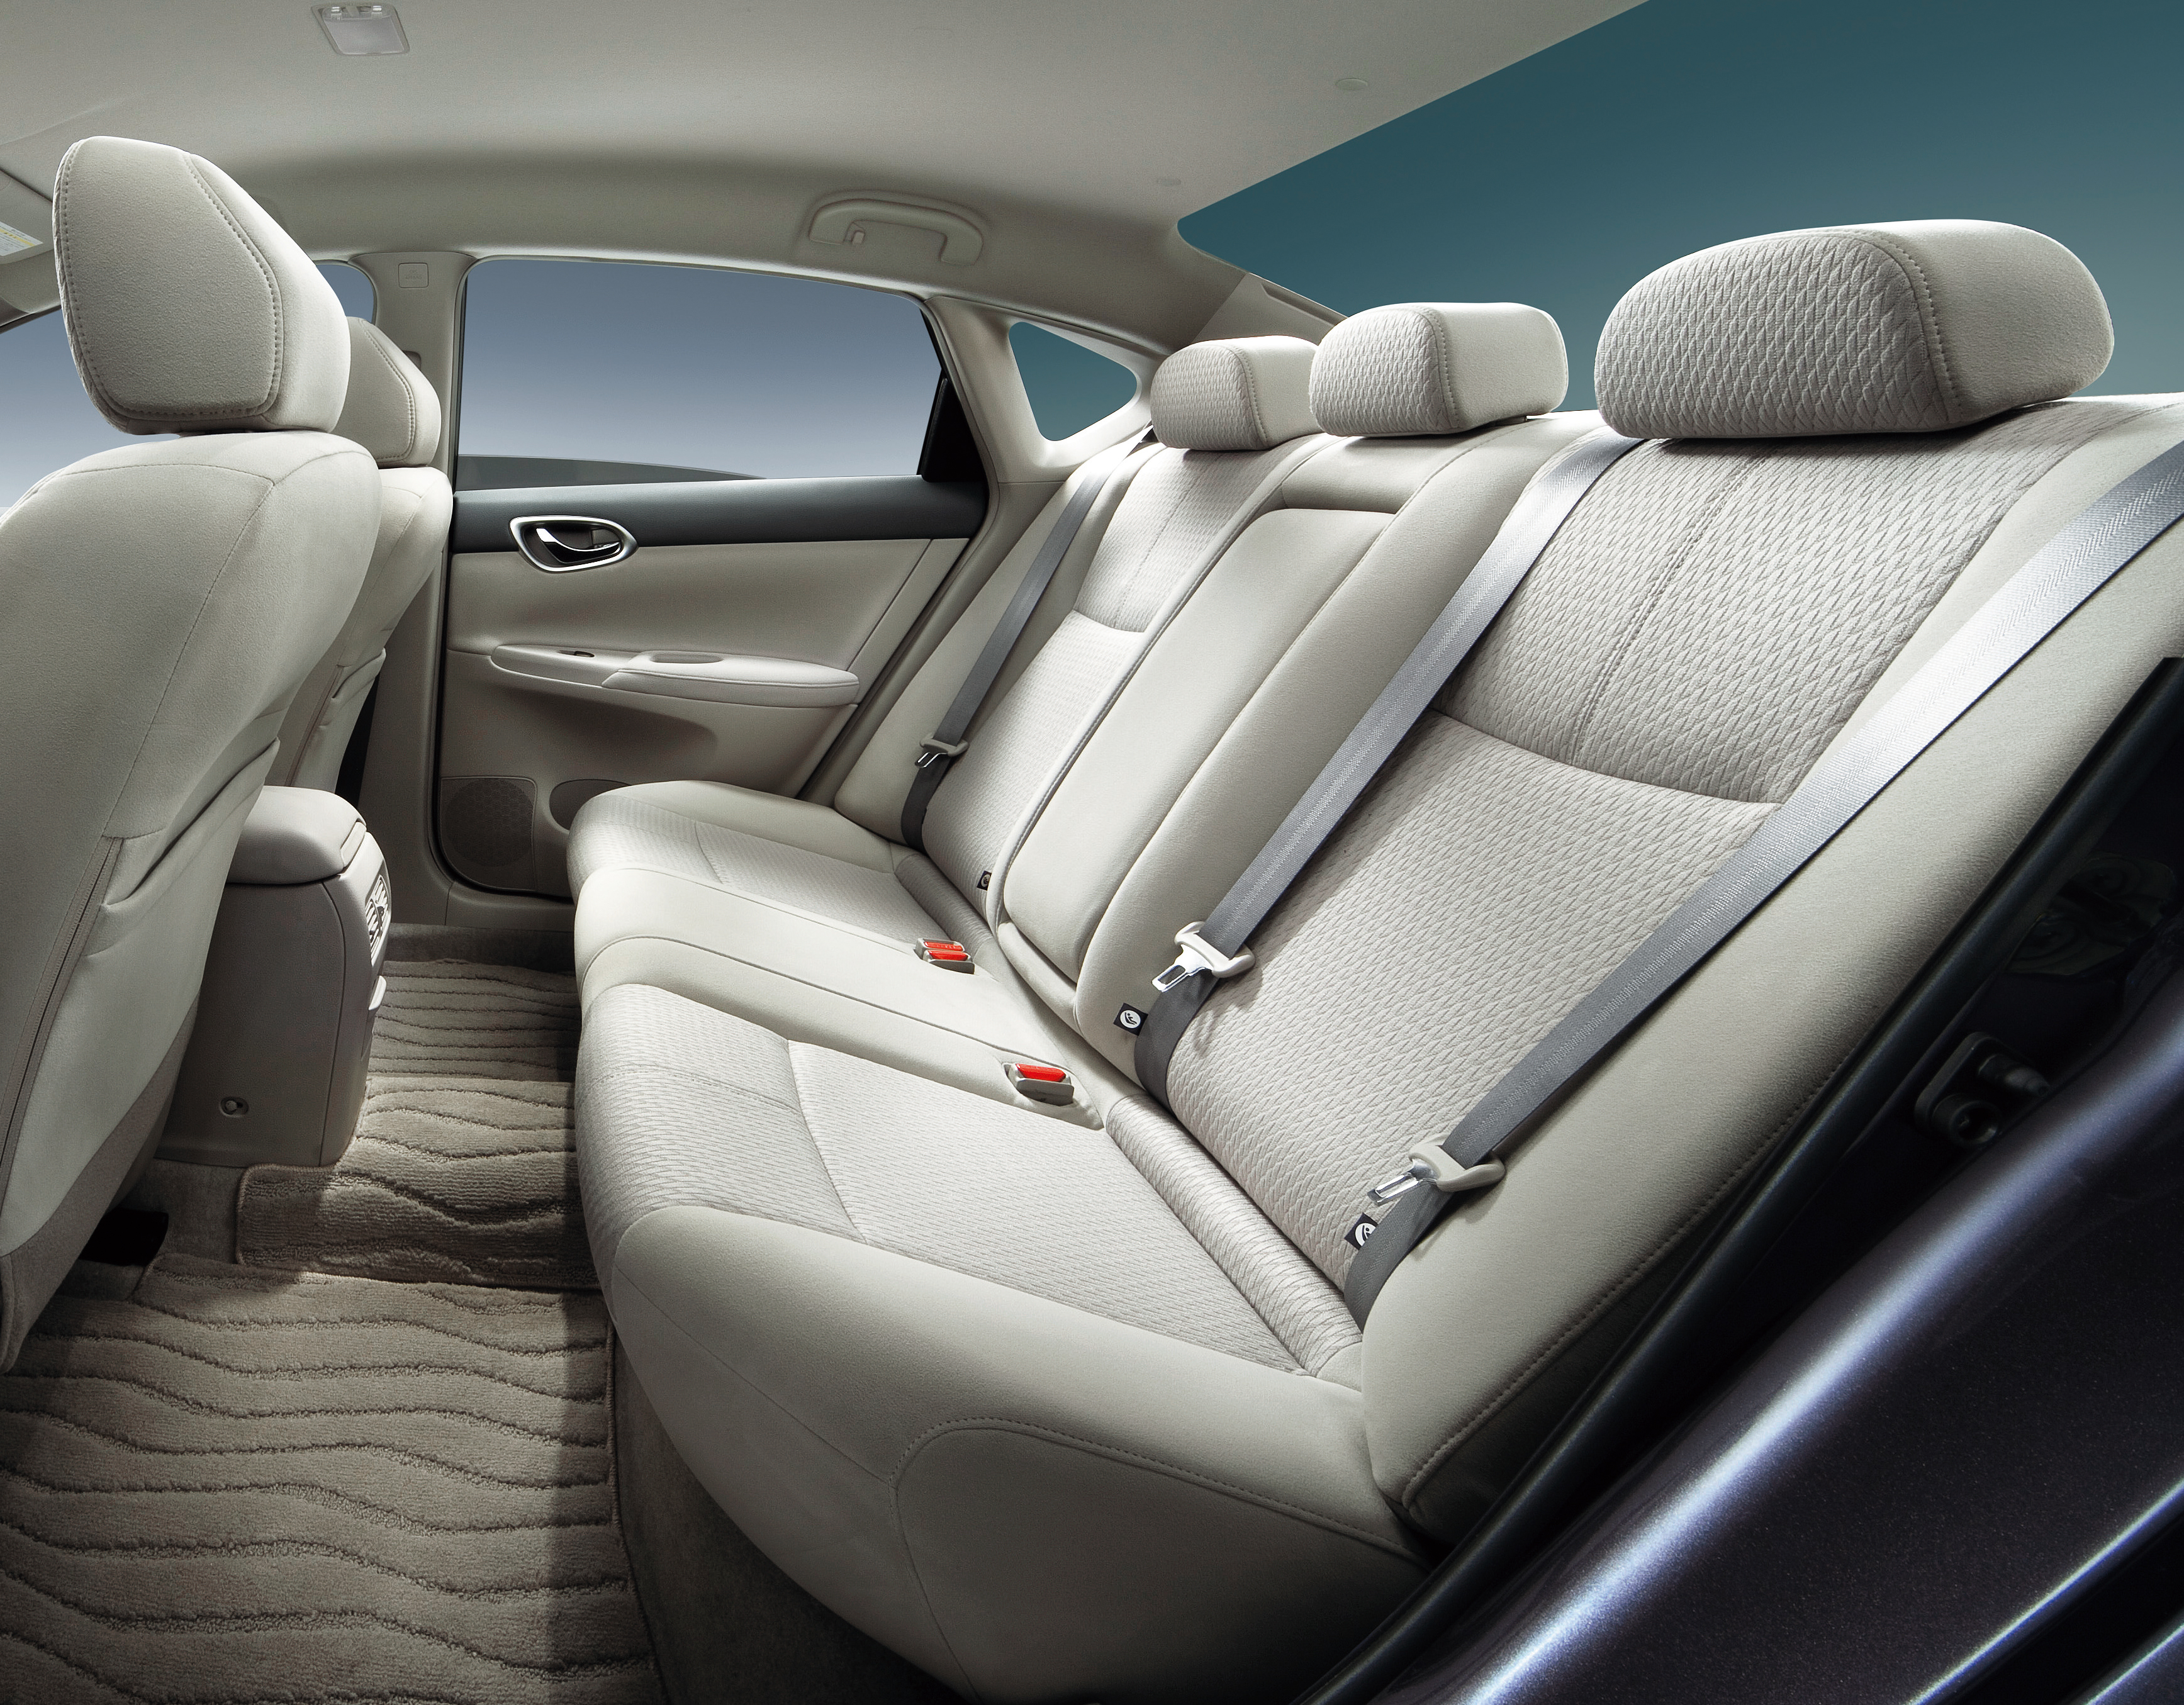 Nissan Sylphy Interiors Seats